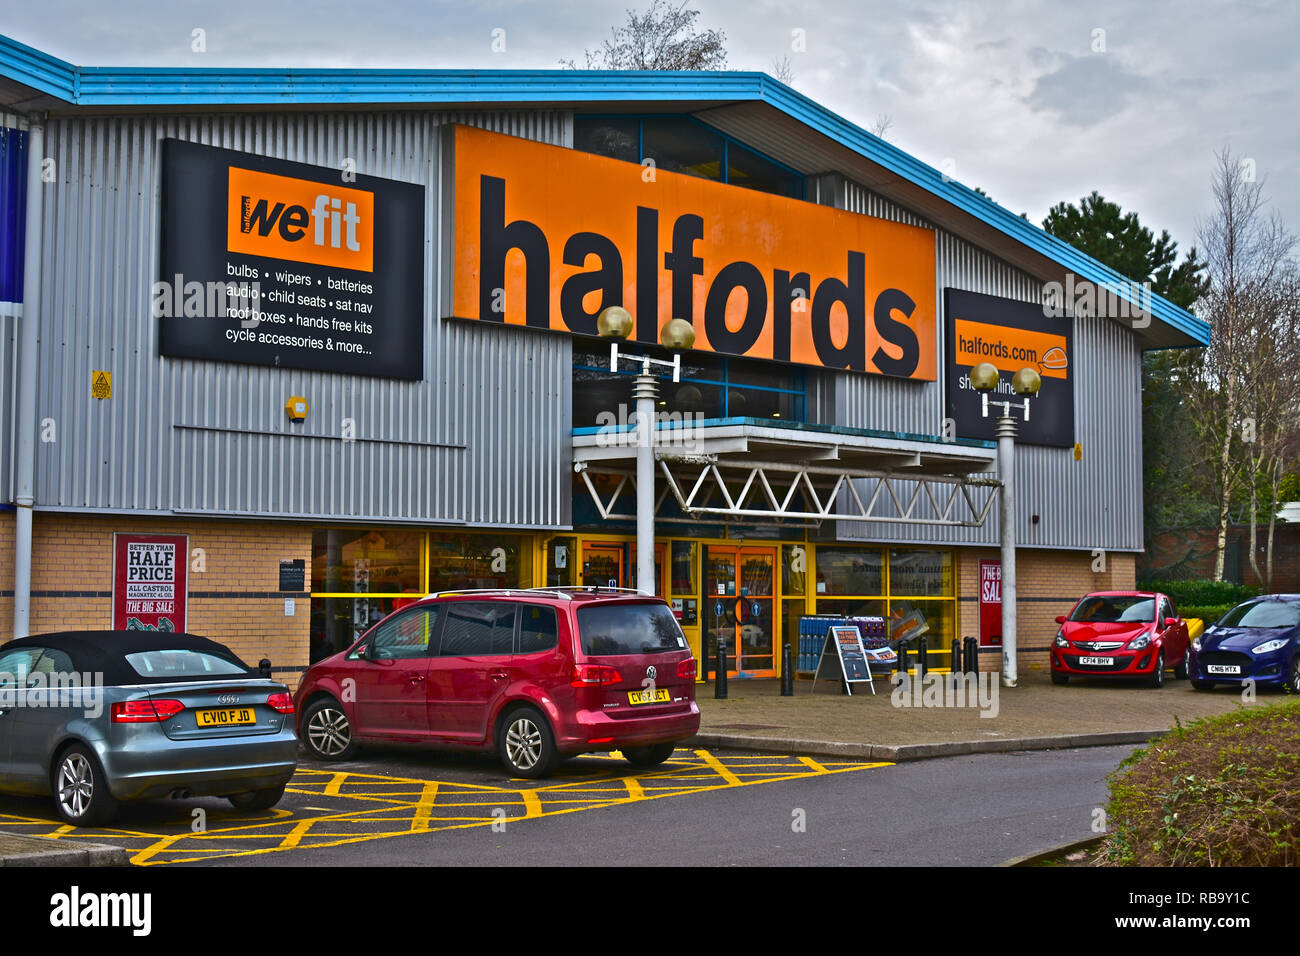 Street view of the front of the Halfords store in Bridgend Retail Park. Cars parked outside. Motoring, cycling and general touring accessories. - Stock Image